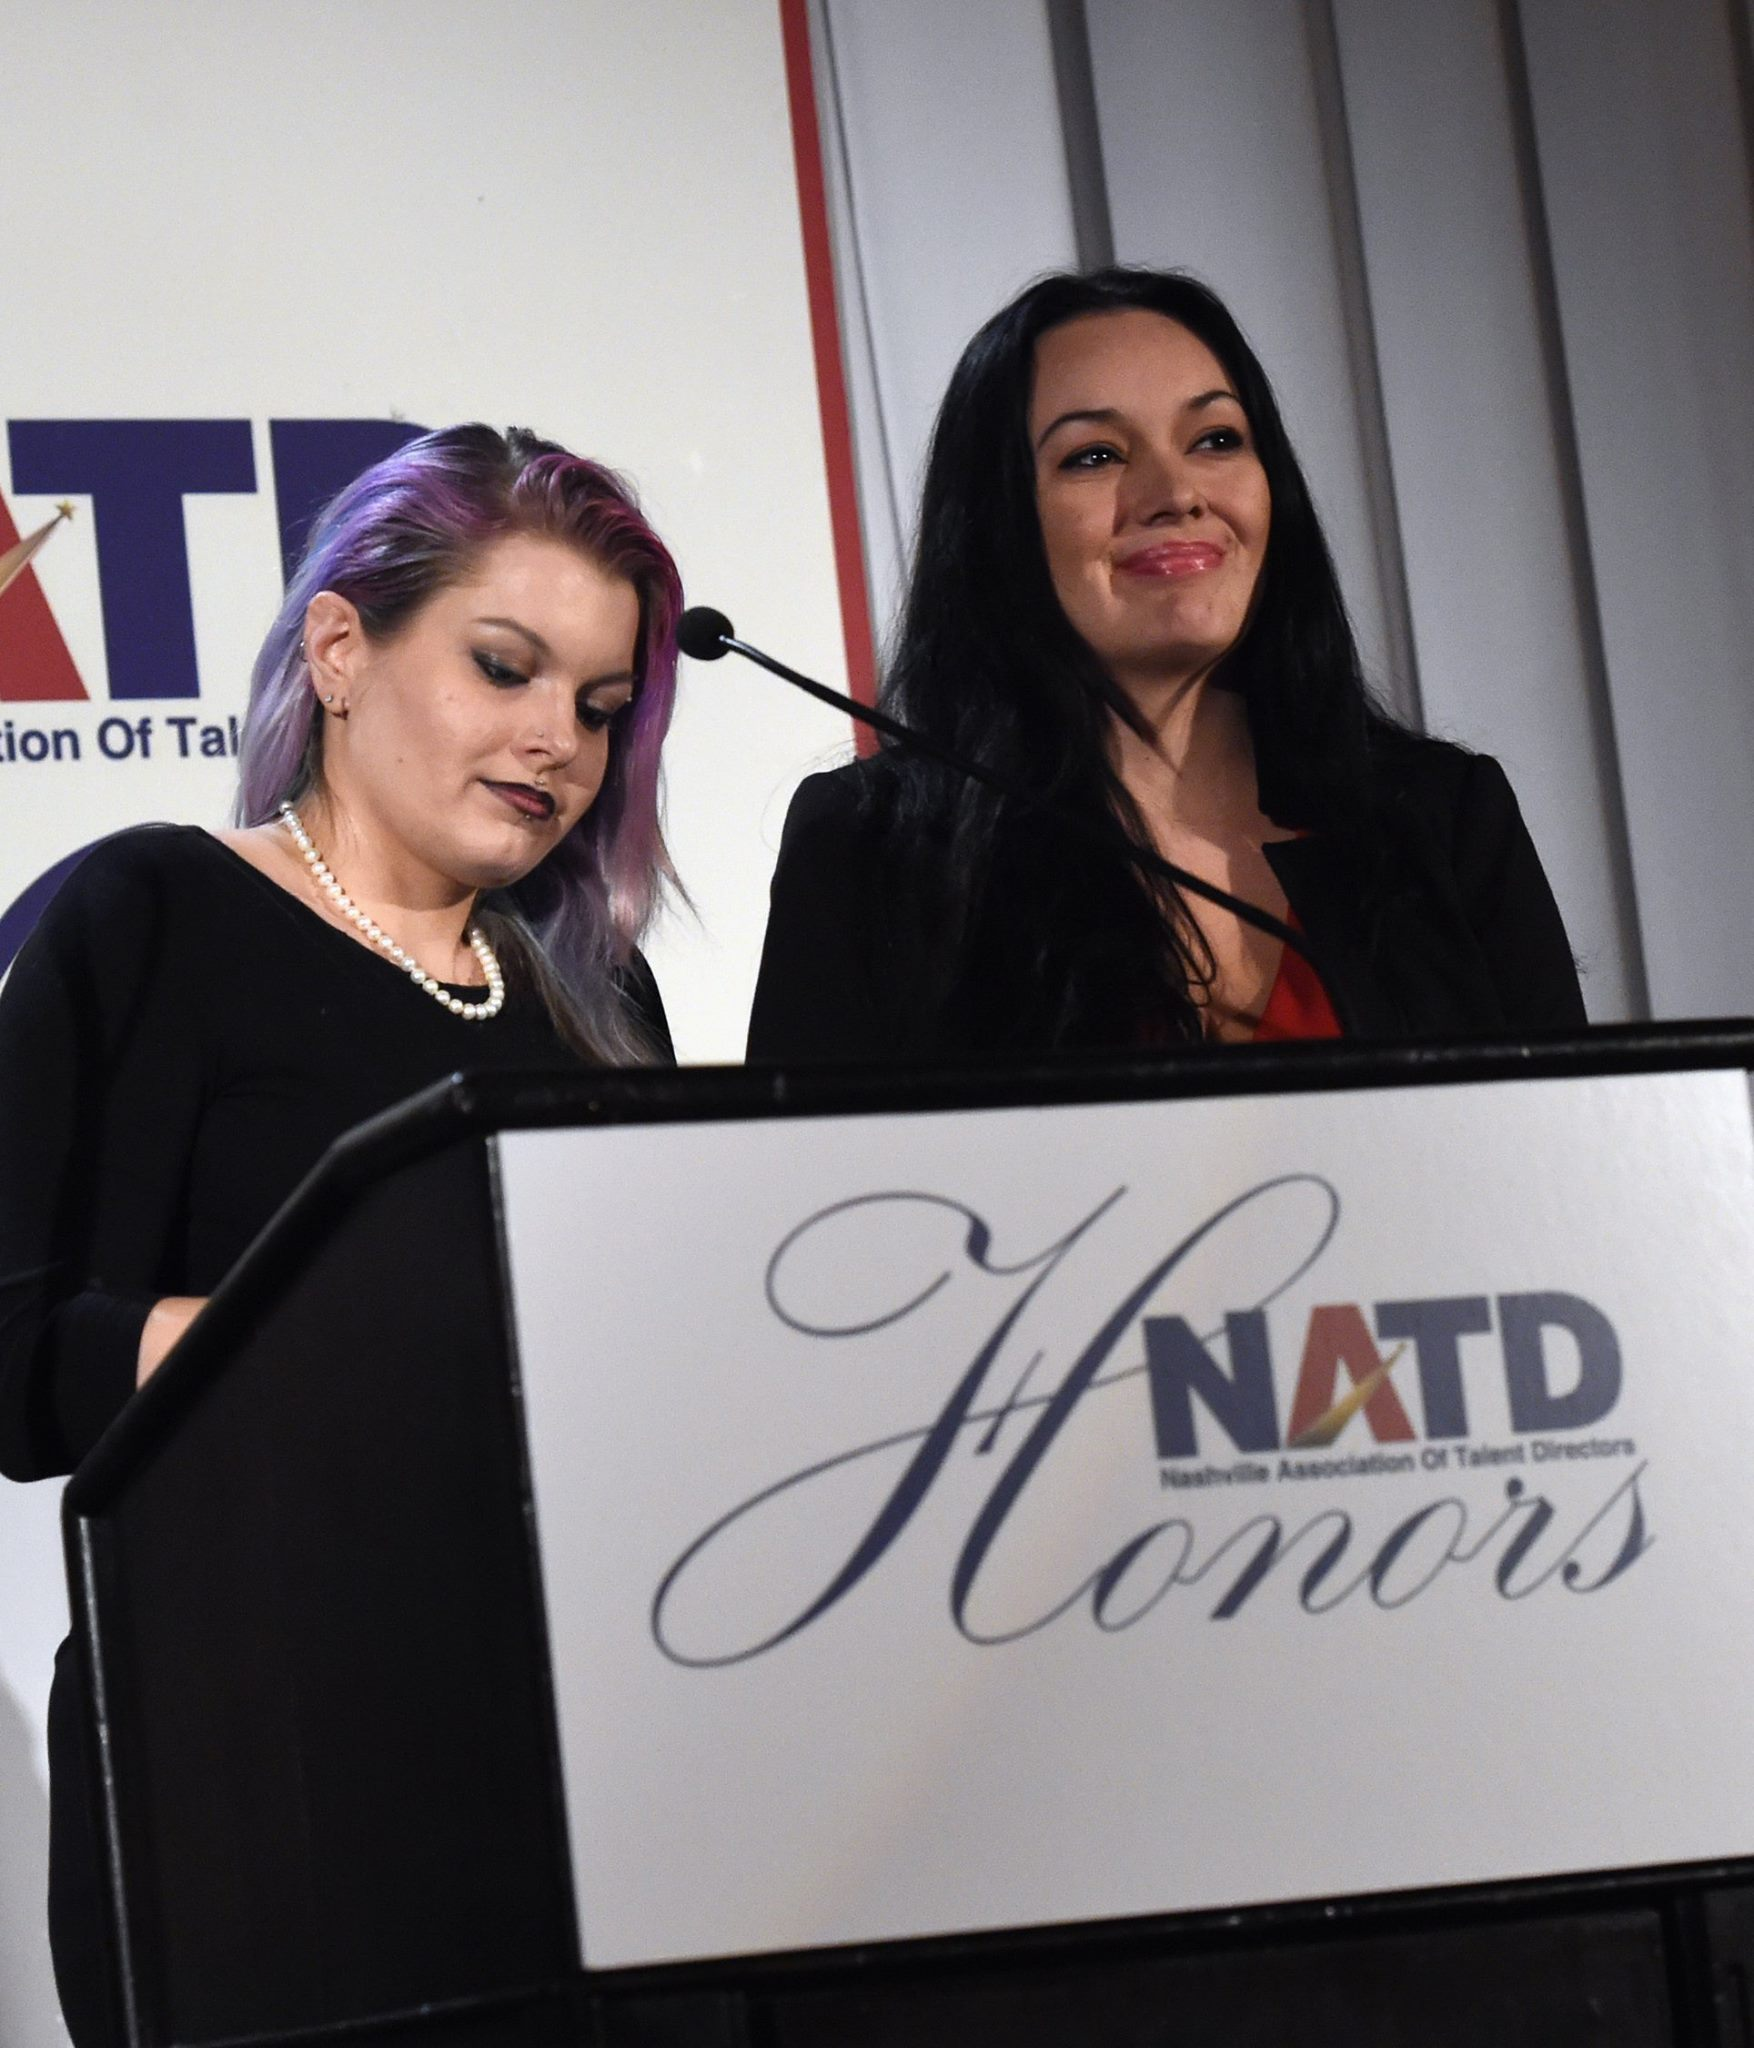 Leon Russell's daughters CoCo Russell and Sugaree Noelk accept for their Dad, Honoree Leon Russell